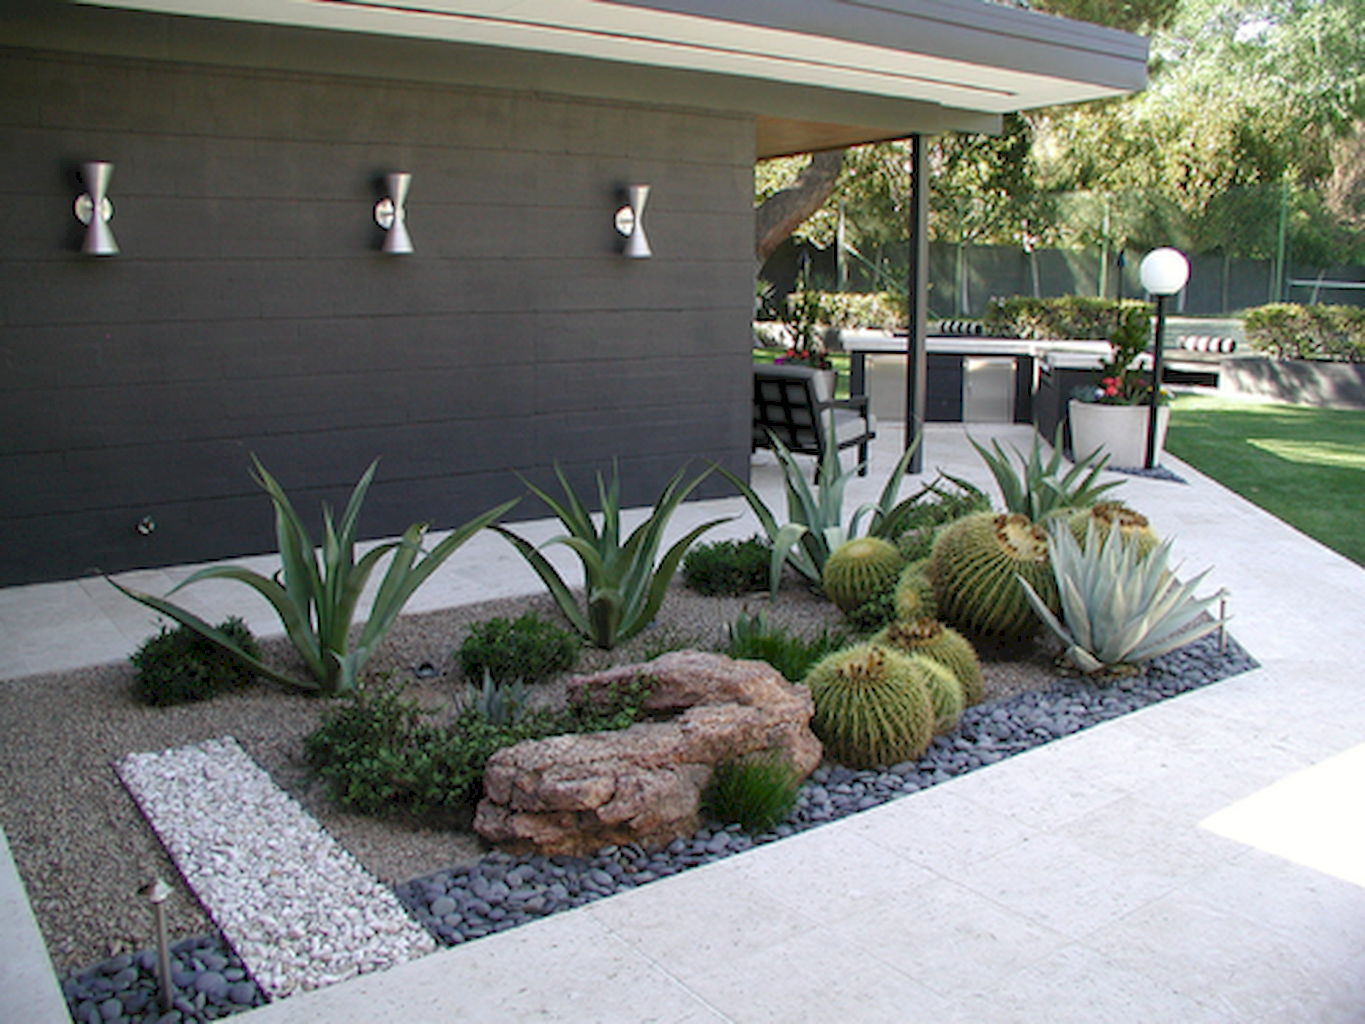 Affordable Low Maintenance Front Yard Landscaping Ideas 22 Modern Garden Landscaping Garden Landscape Design Low Water Landscaping